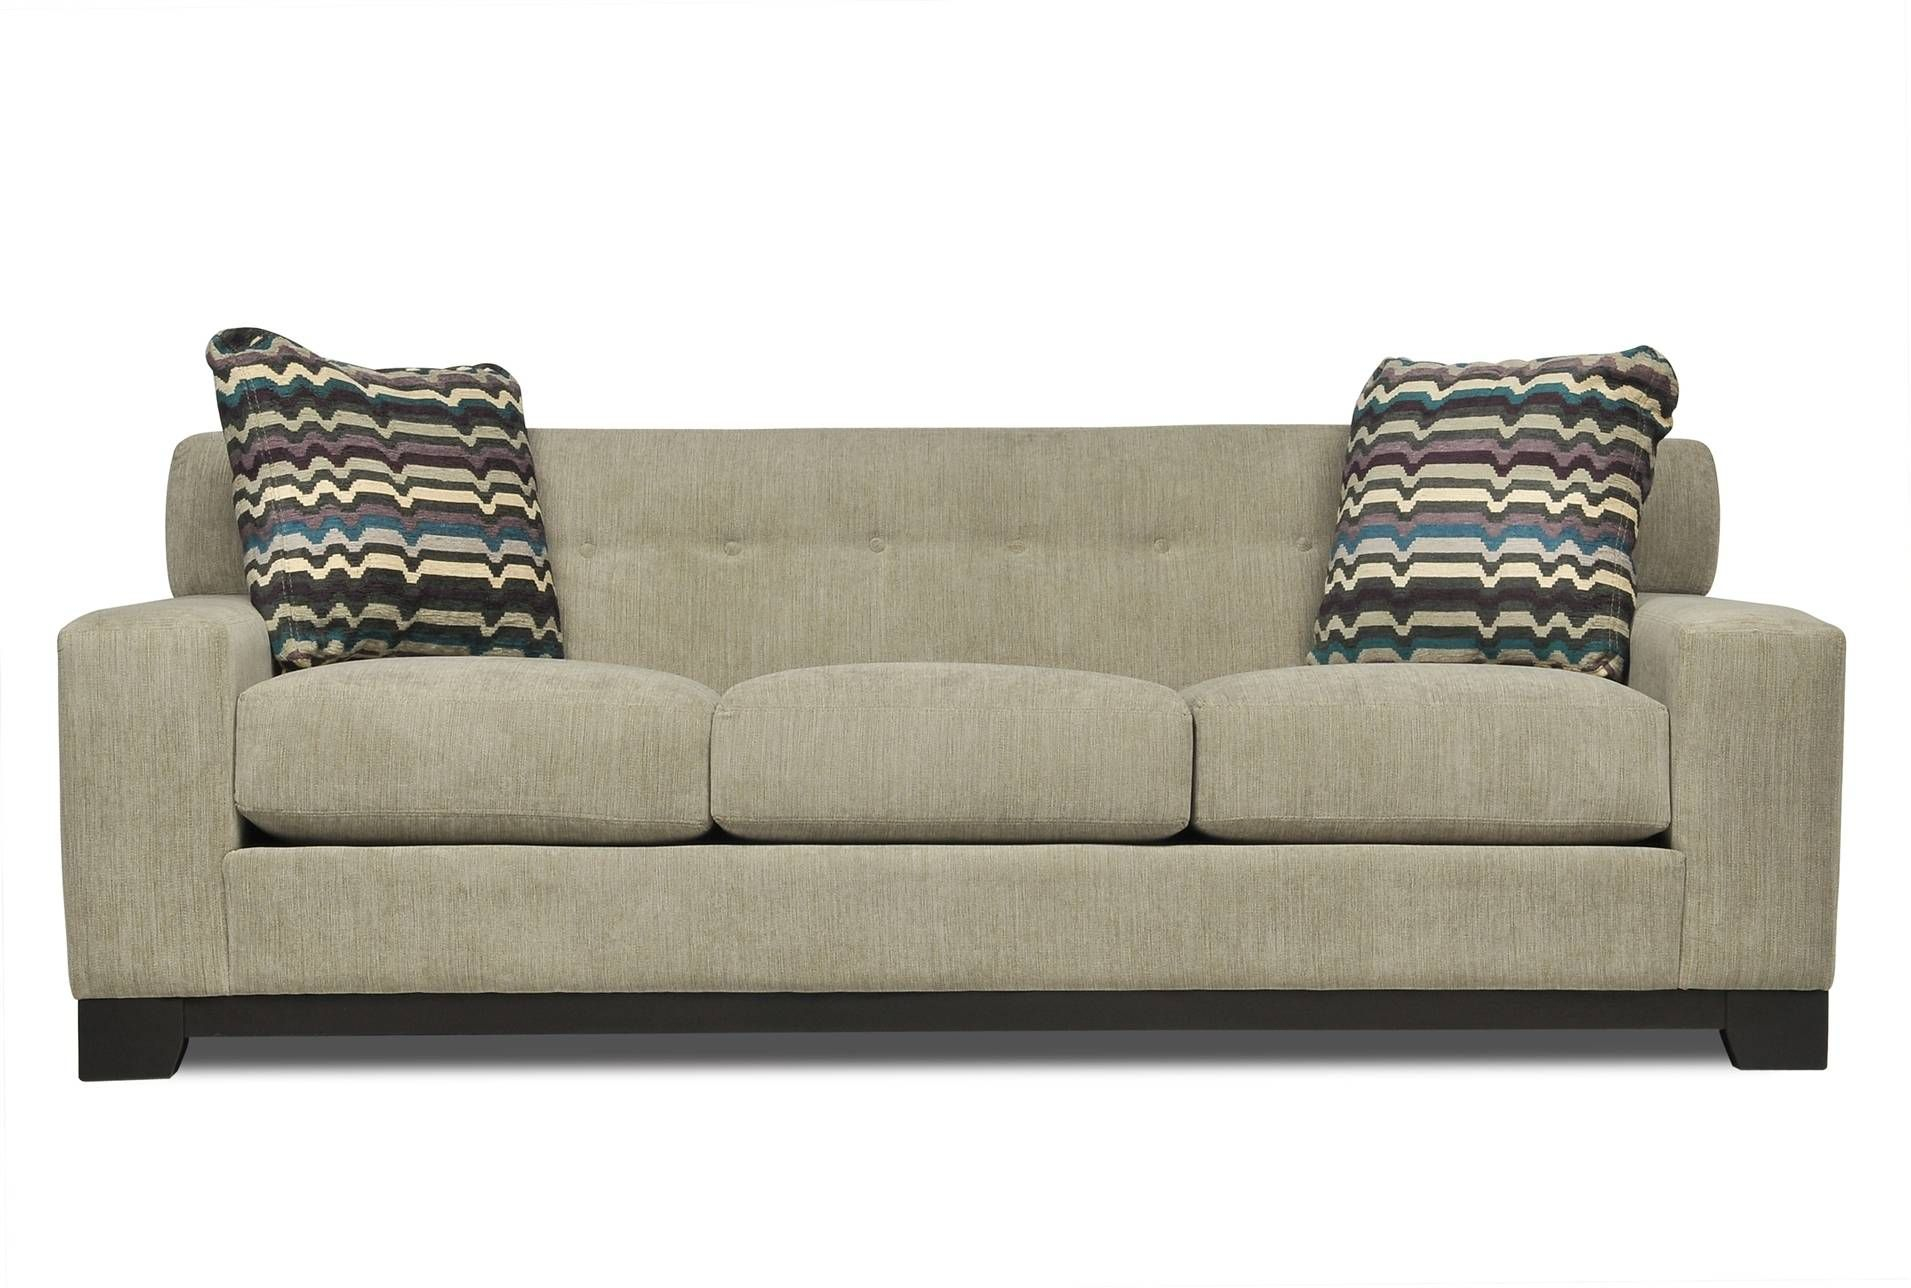 Rory Sofa – Deep Sofa W/ Comfy Fabric Material! | Home | Decor With Regard To Rory Sofa Chairs (Image 16 of 20)